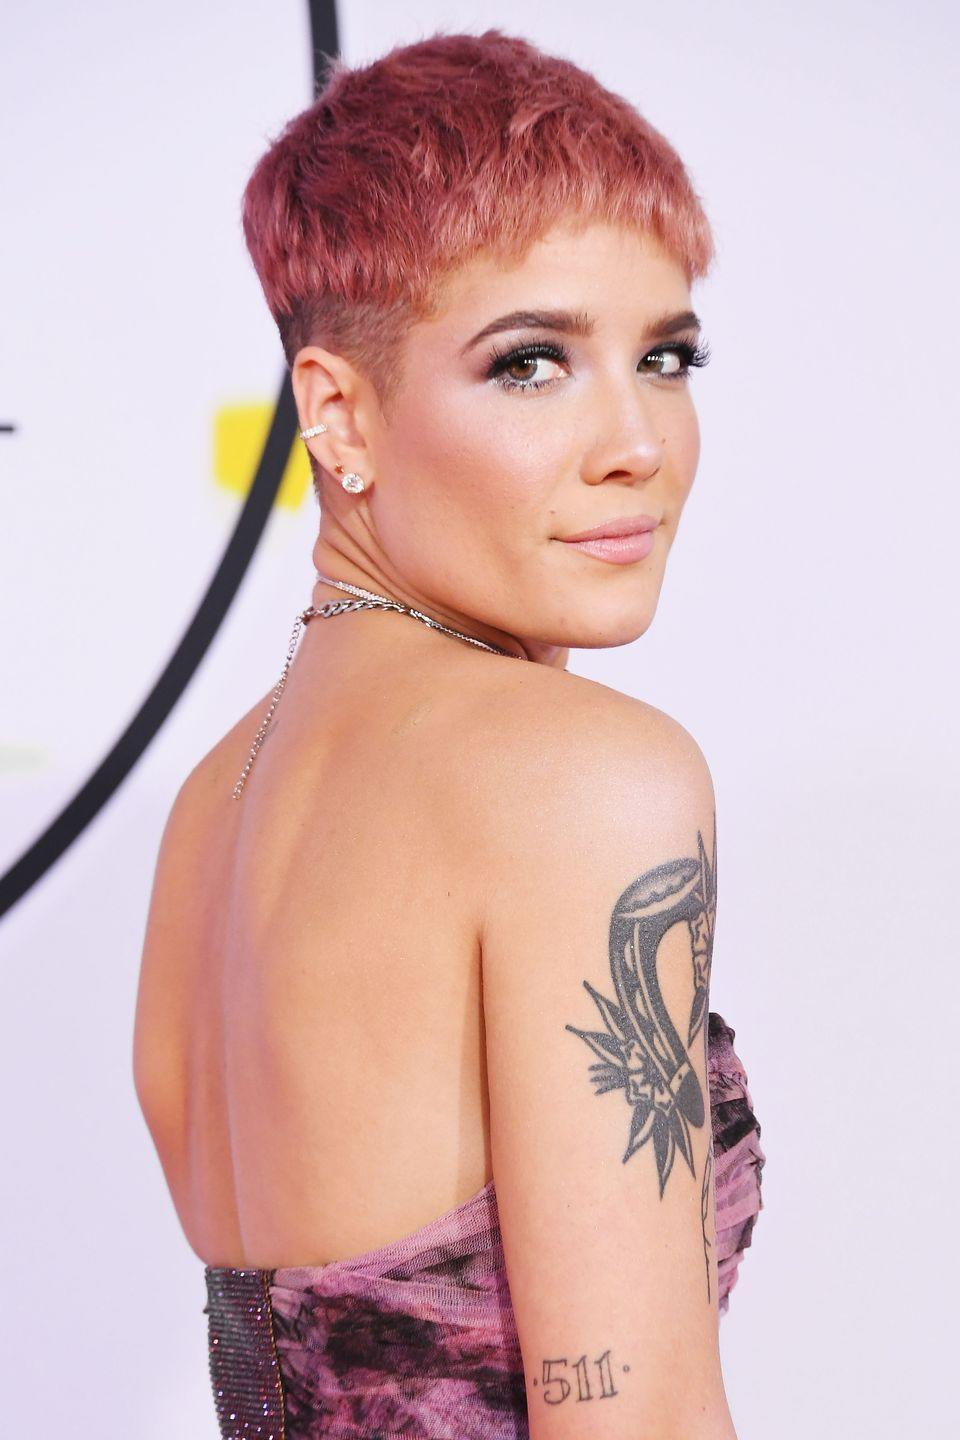 """<p><strong>Born</strong>: Ashley Frangipane</p><p>Although fans have long speculated that Halsey created her stage name as an anagram of her first name, Ashley, she was actually inspired by a street in Brooklyn. In an <a href=""""https://www.youtube.com/watch?v=cUG8VDYy7CY"""" rel=""""nofollow noopener"""" target=""""_blank"""" data-ylk=""""slk:interview for Vevo"""" class=""""link rapid-noclick-resp"""">interview for Vevo</a>, the singer revealed that a friend of hers lived on Halsey Street, and she spent her weekends away from her New Jersey hometown there making music.</p>"""